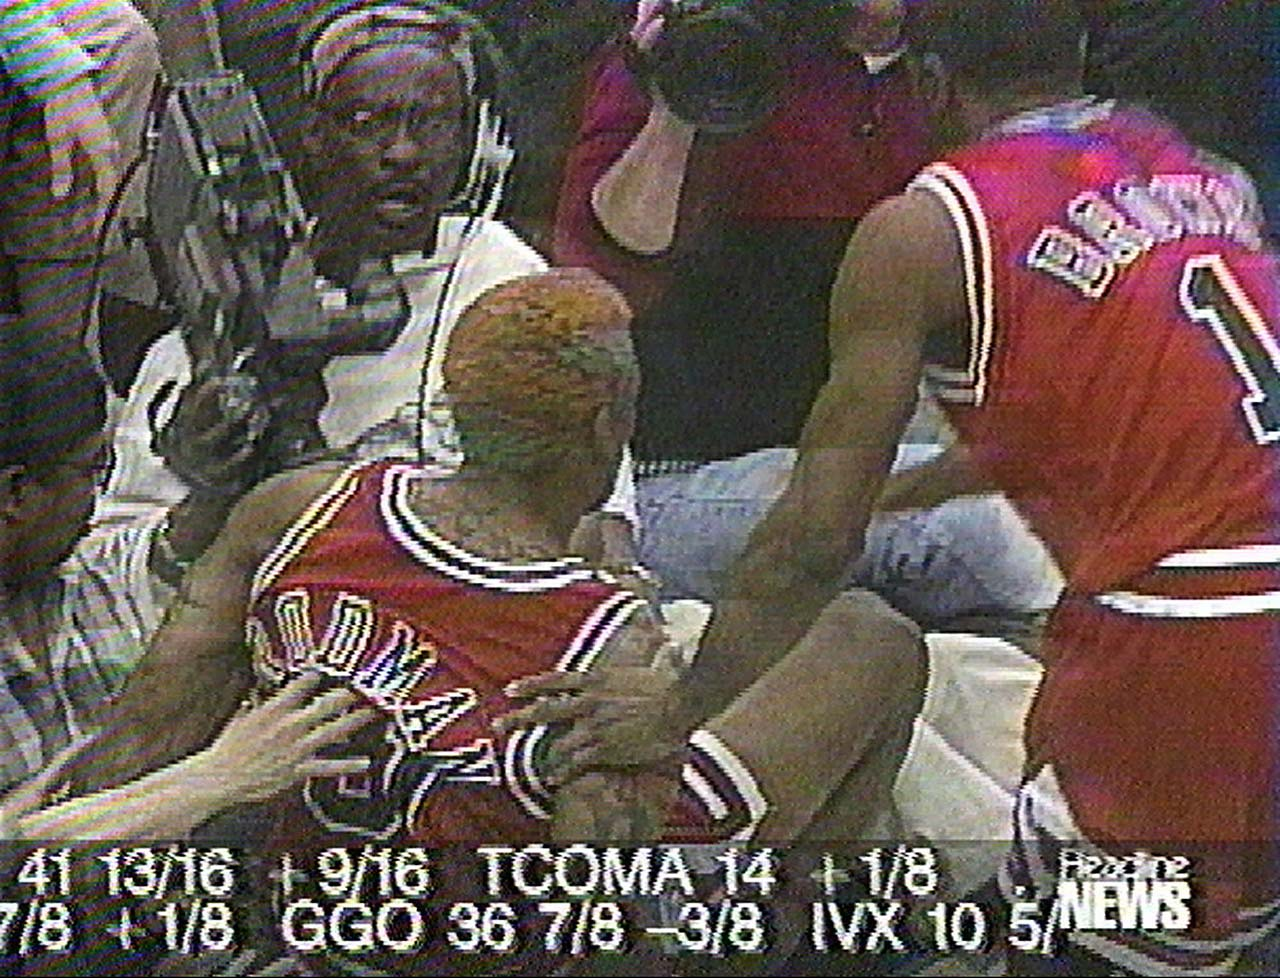 Dennis Rodman kicked cameraman Eugene Amos in the groin during a game against the Minnesota Timberwolves in 1997. Amos was carried from the court on a stretcher before being treated at a hospital.